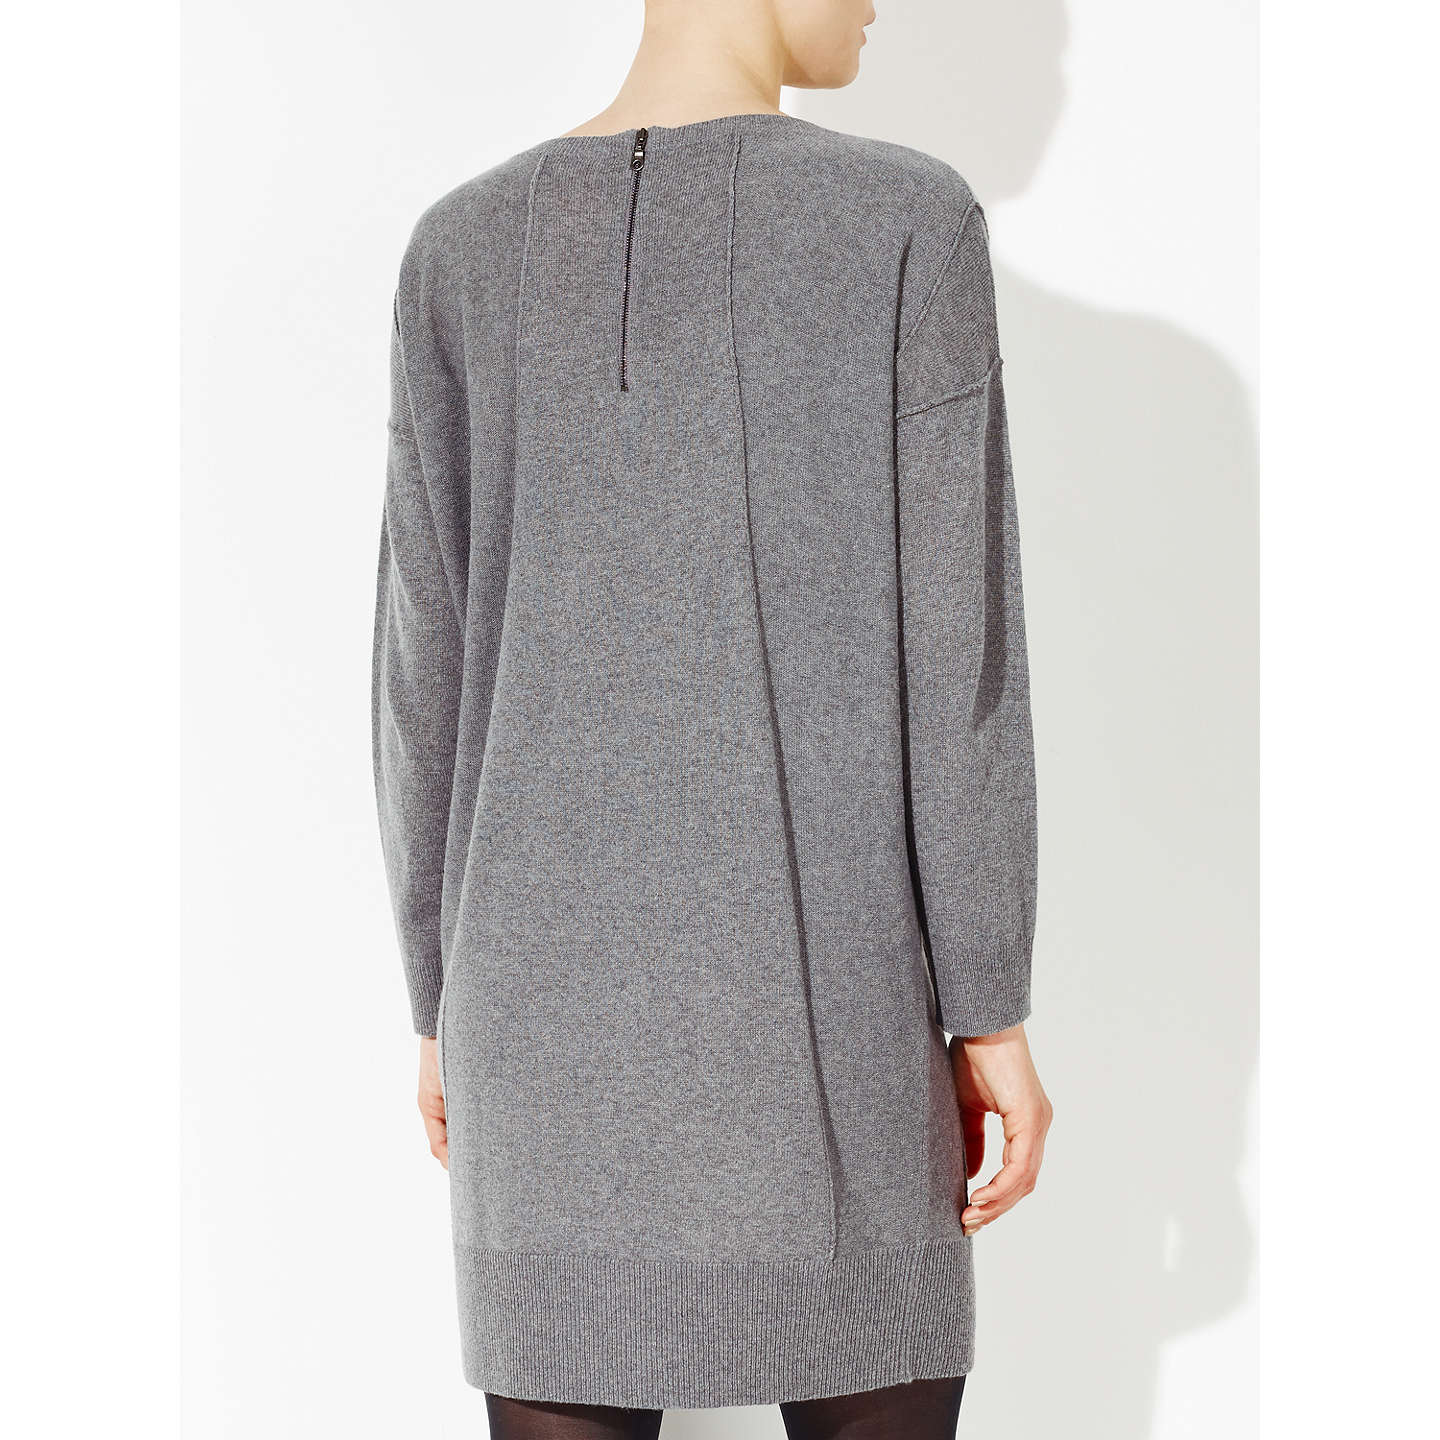 BuyKin by John Lewis Reverse Seam Cocoon Dress, Grey, 8 Online at johnlewis.com